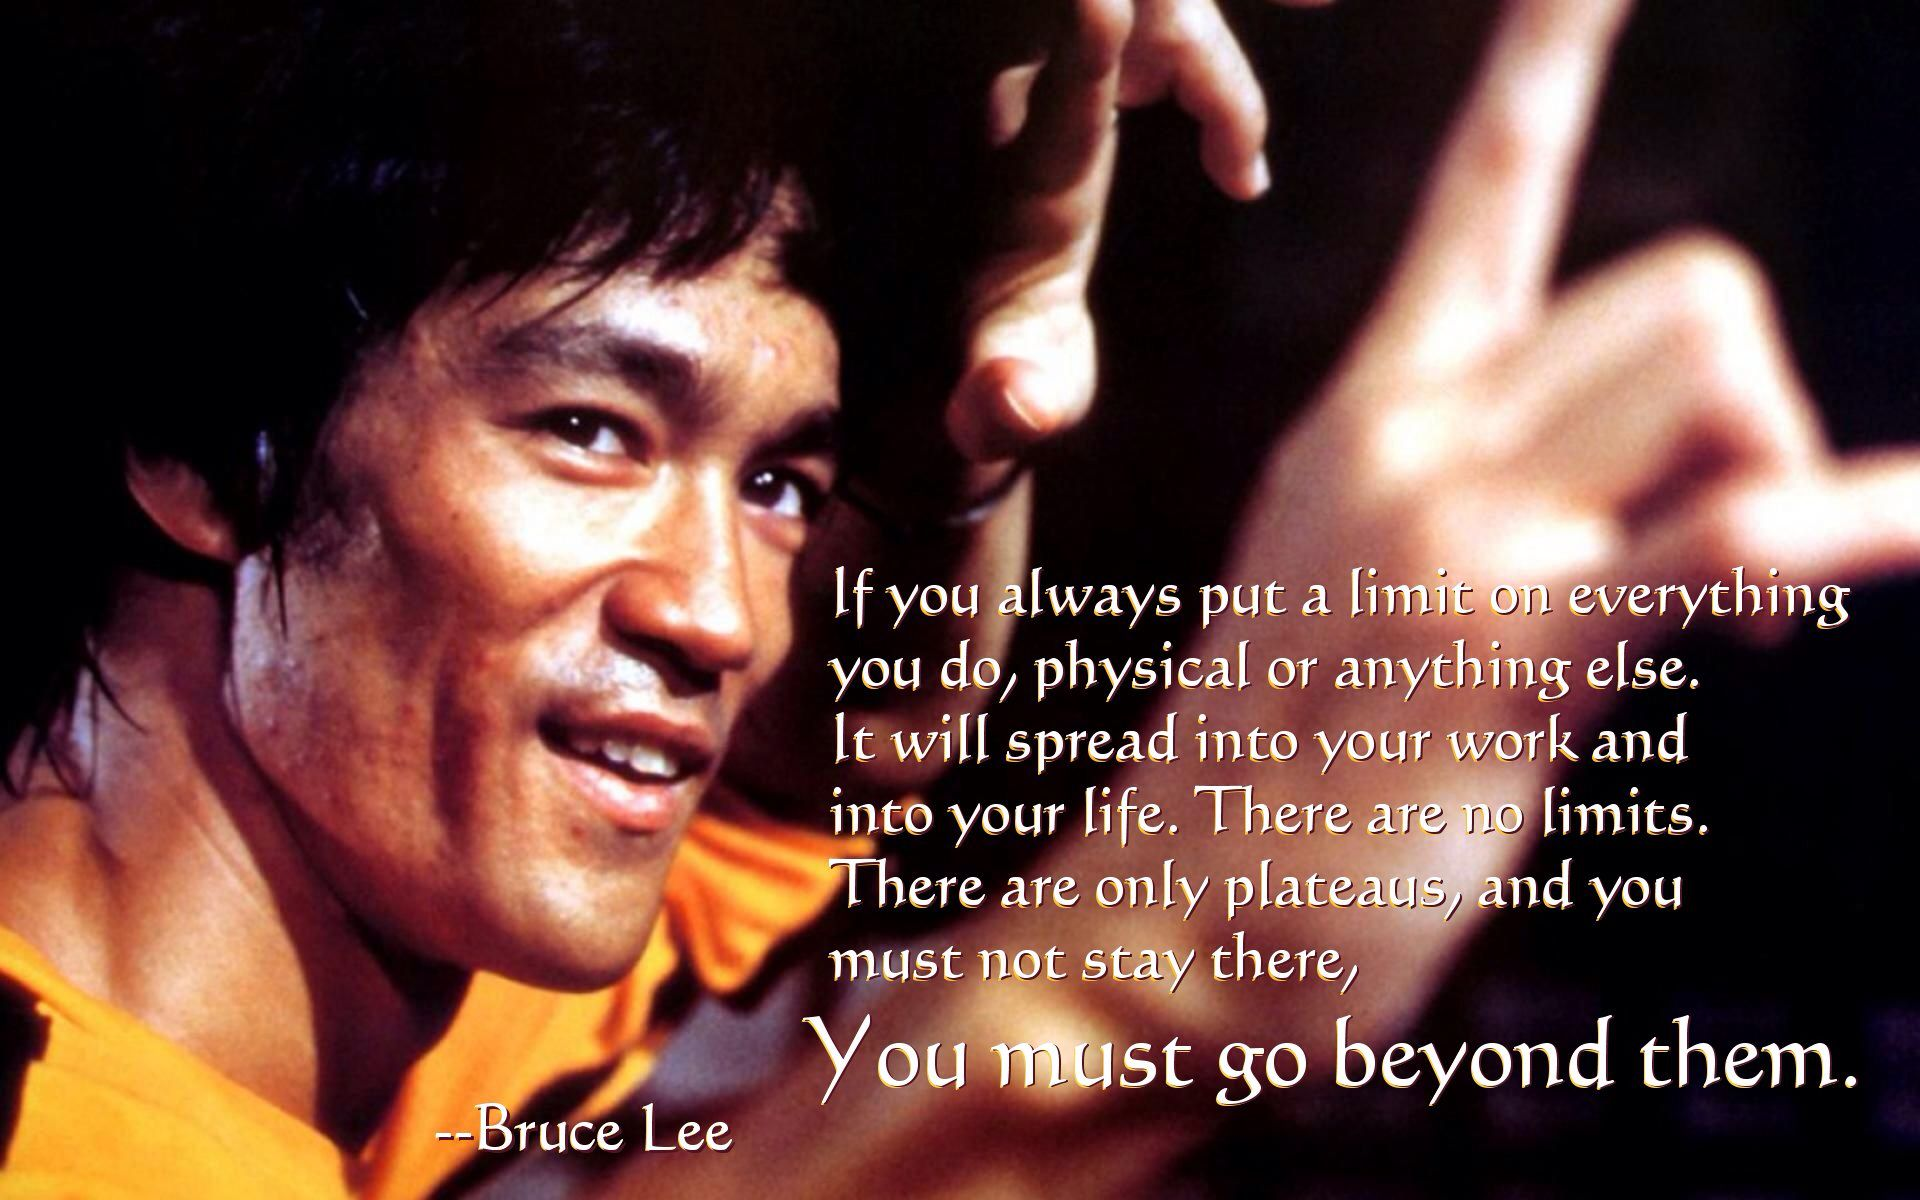 More Bruce Lee Insightful Quotes Most Famous Quotes Quote Posters